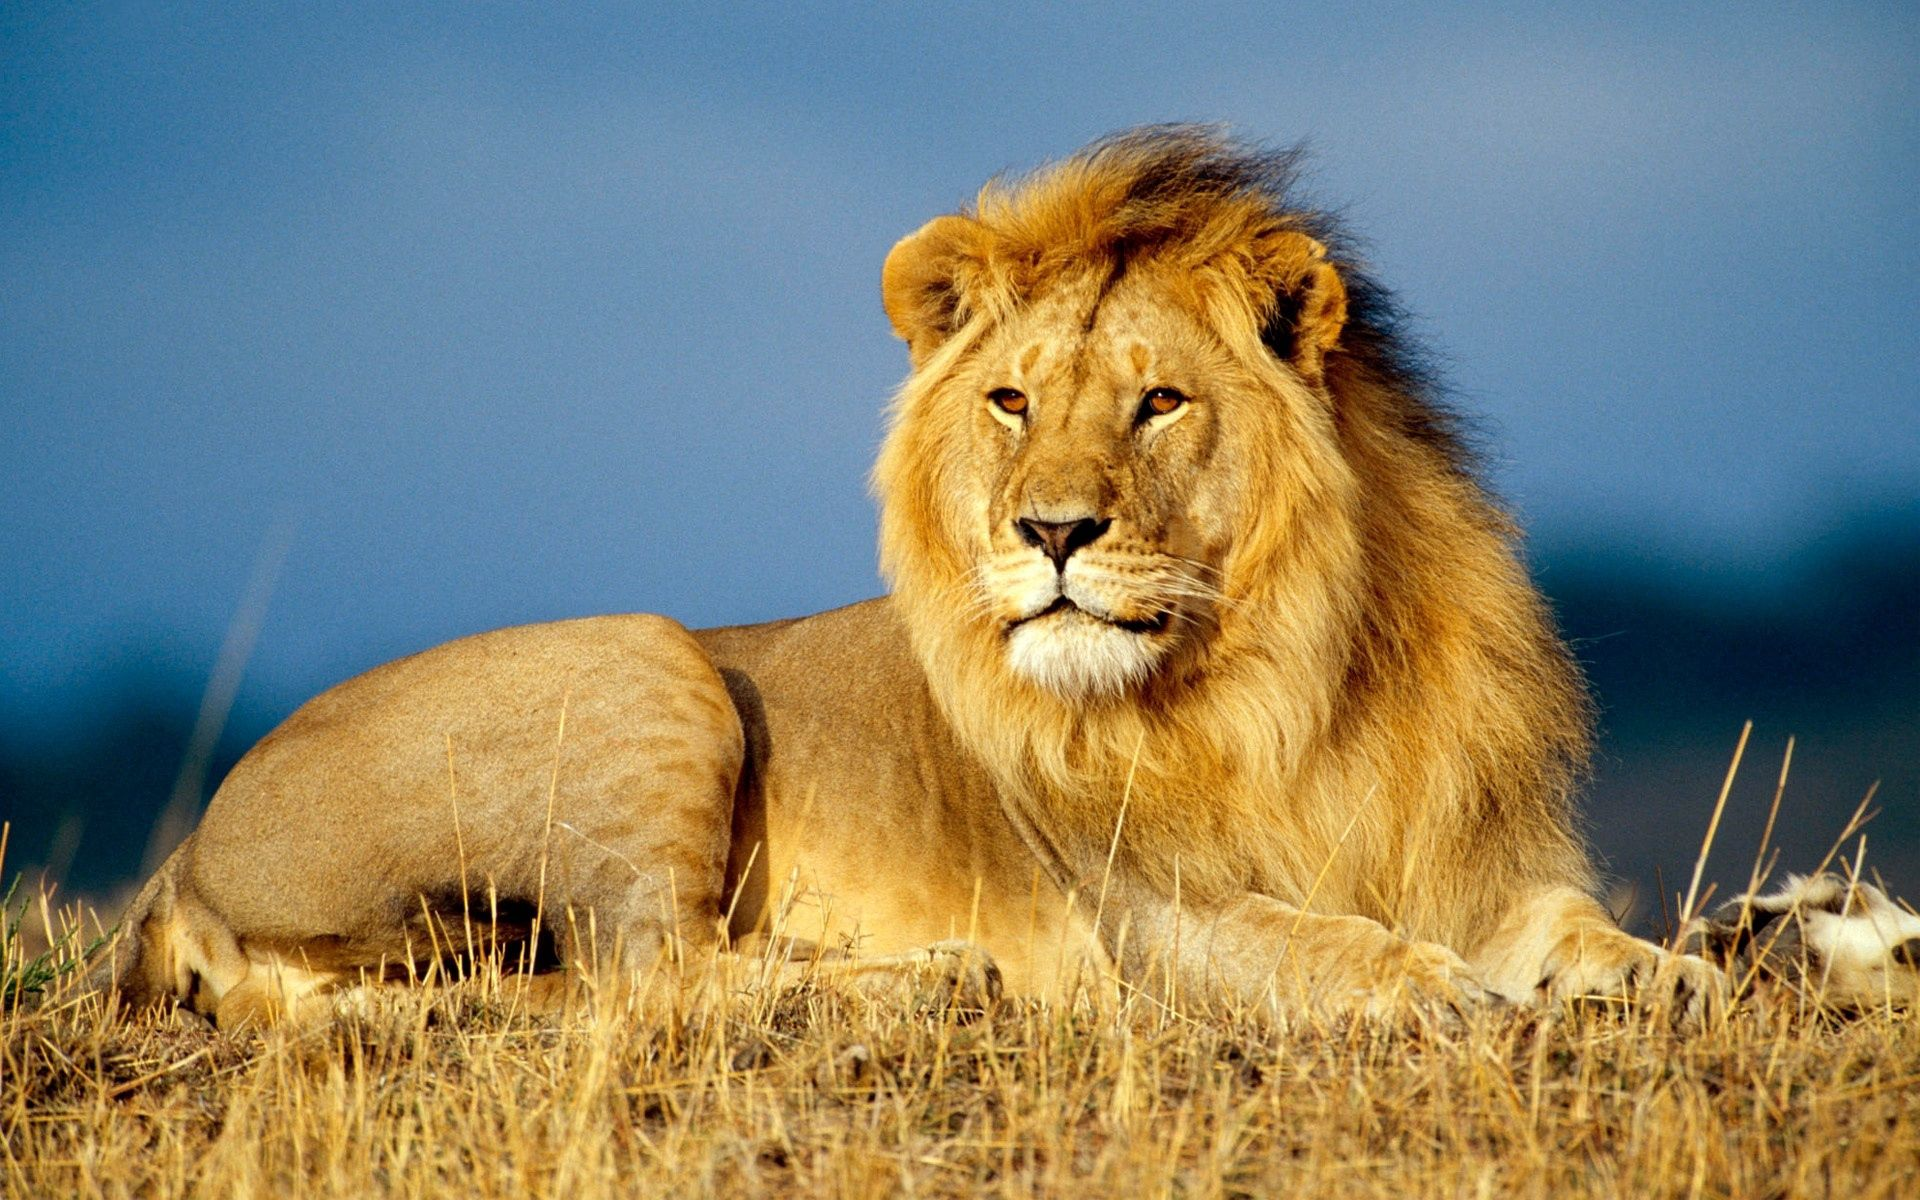 96819 download wallpaper Animals, Lion, King Of Beasts, King Of The Beasts, To Lie Down, Lie, Sight, Opinion, Mane screensavers and pictures for free